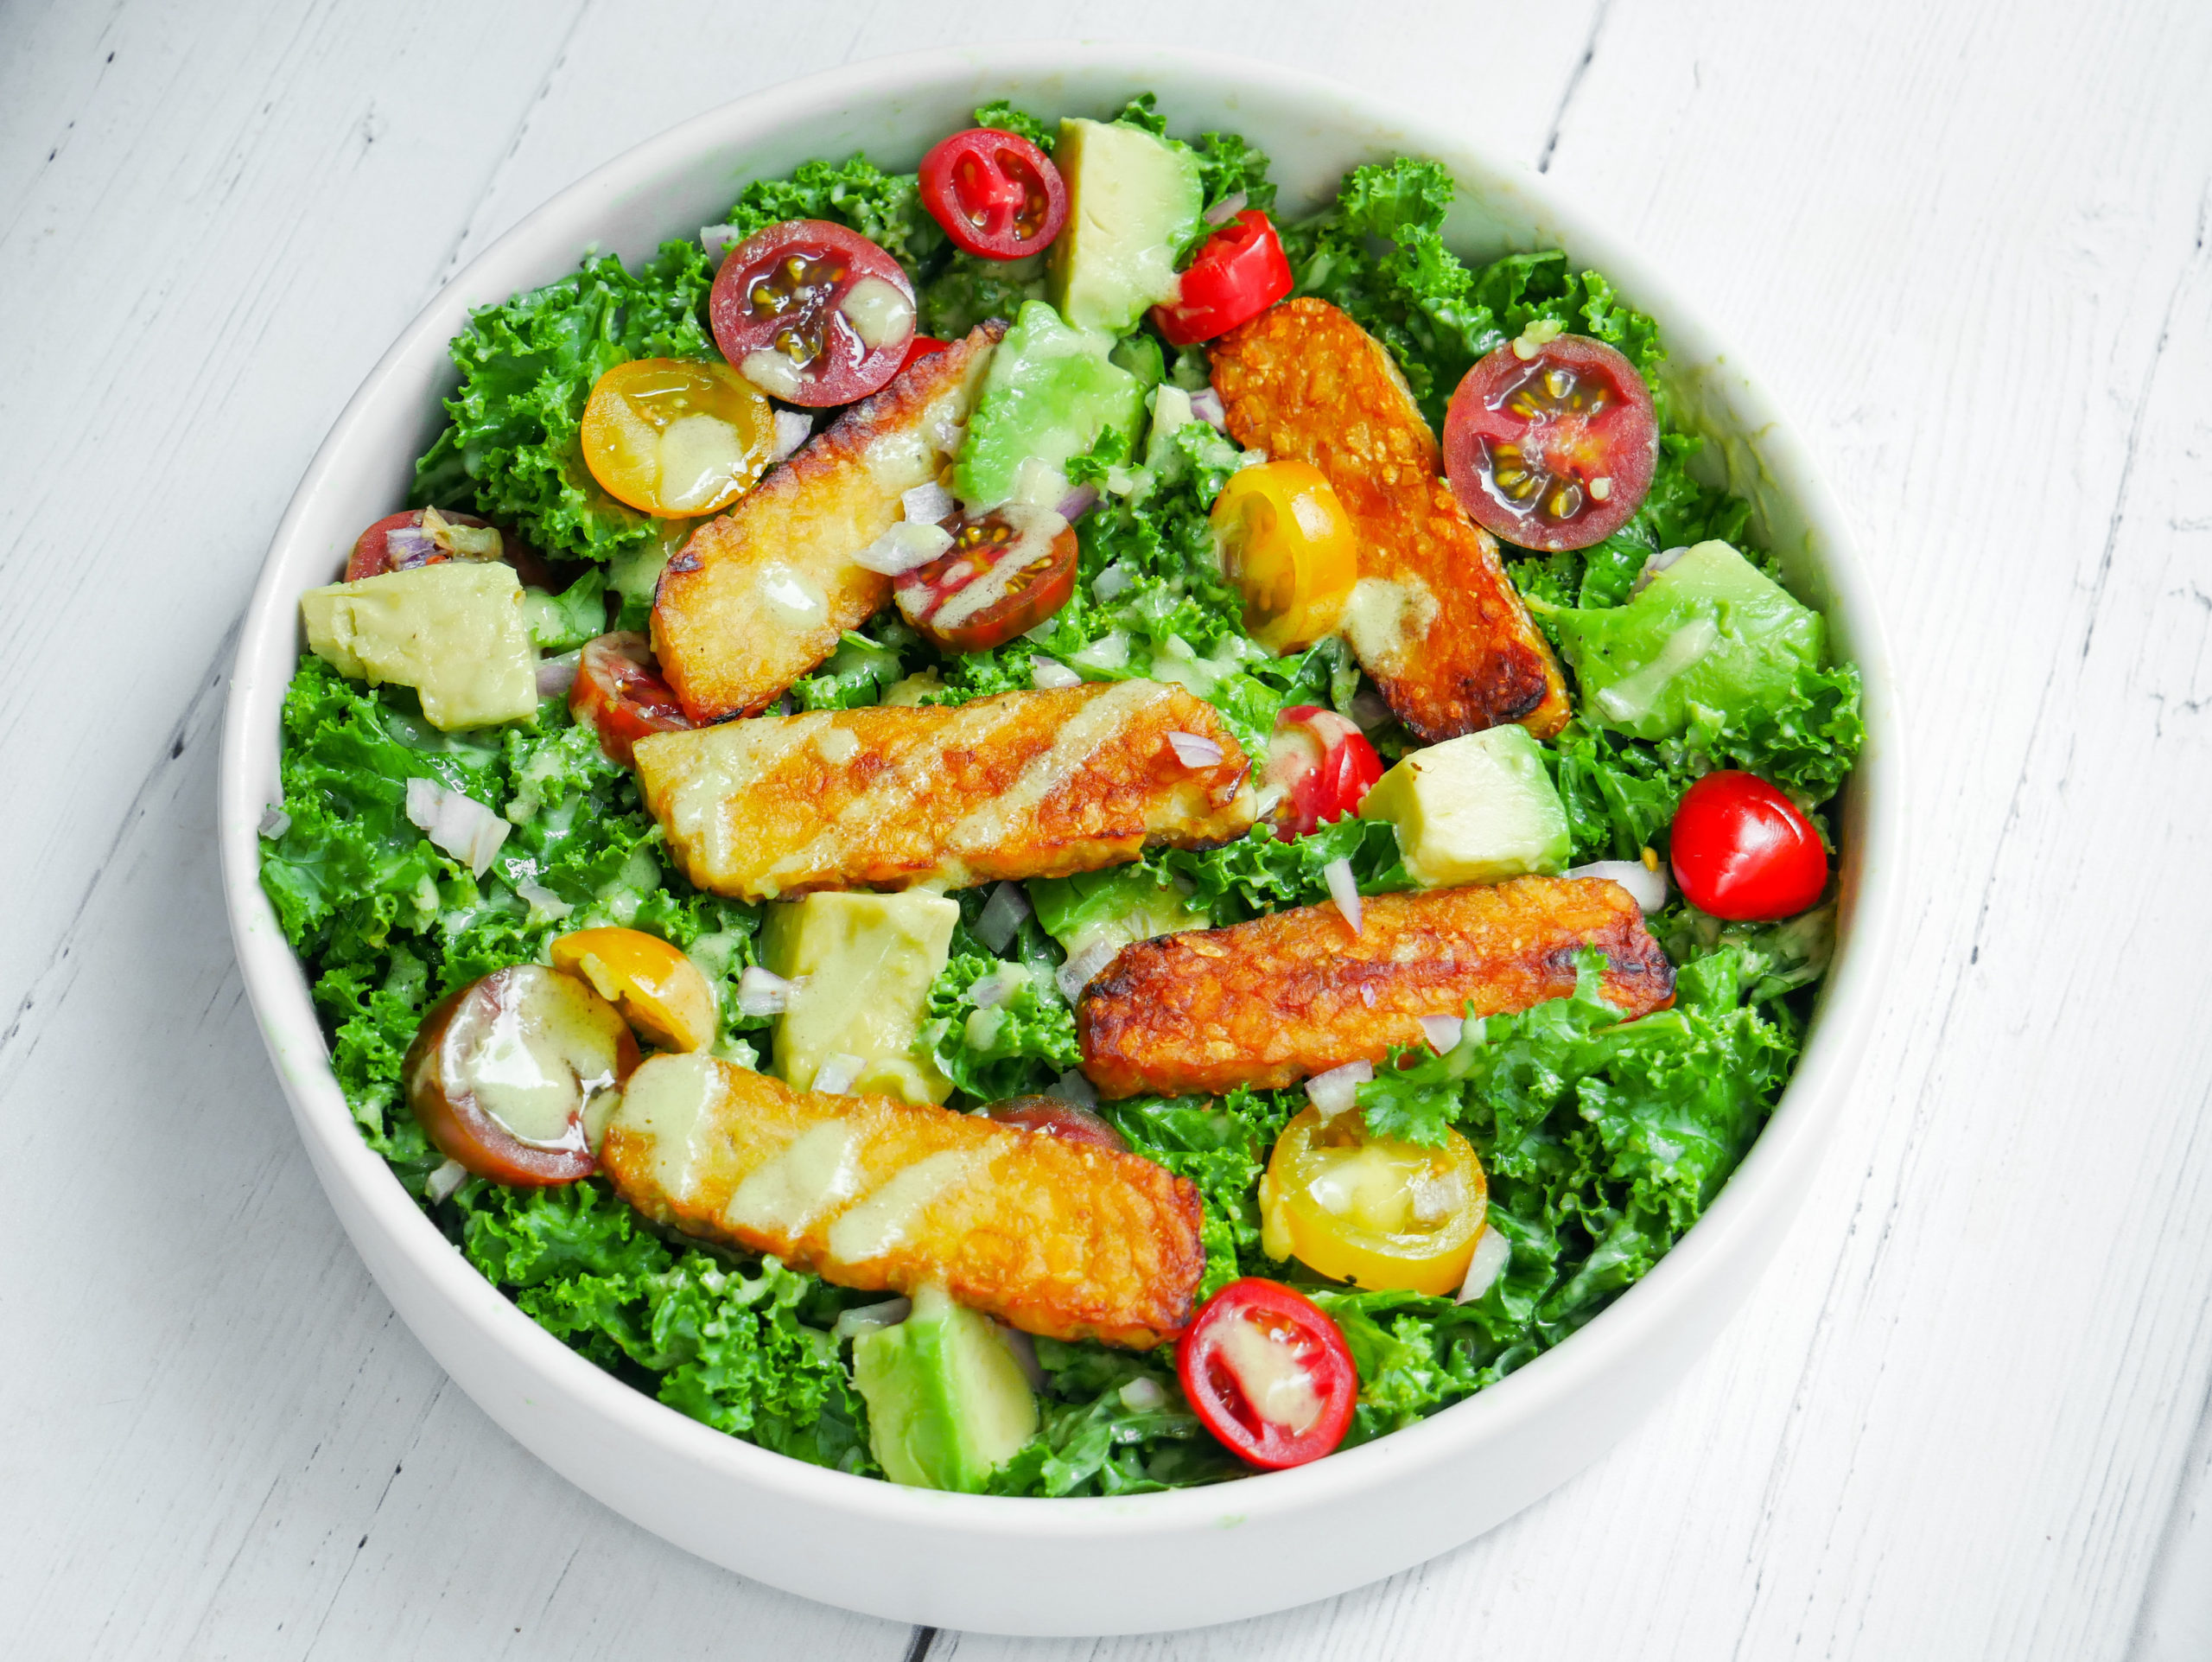 vegan kale caesar with tempeh, avocado, cherry tomatoes, shallots